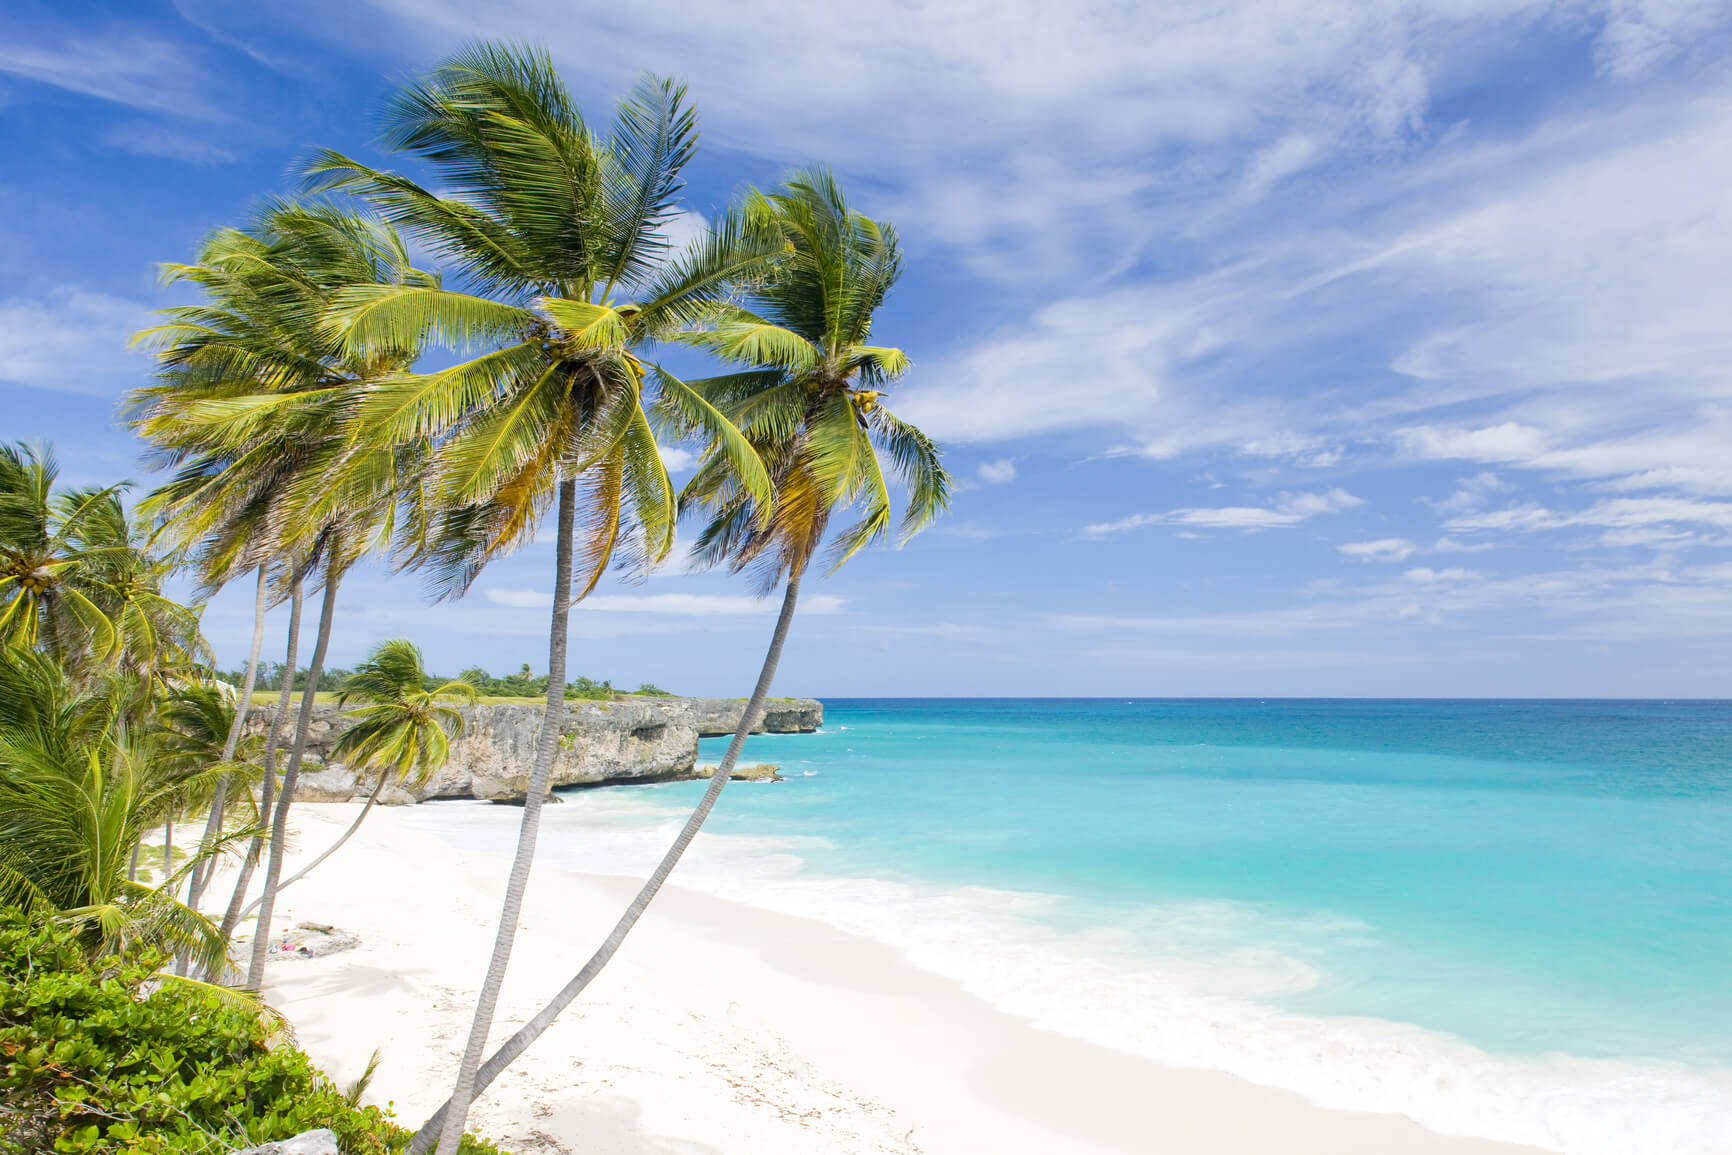 New York to Barbados for only $280 roundtrip